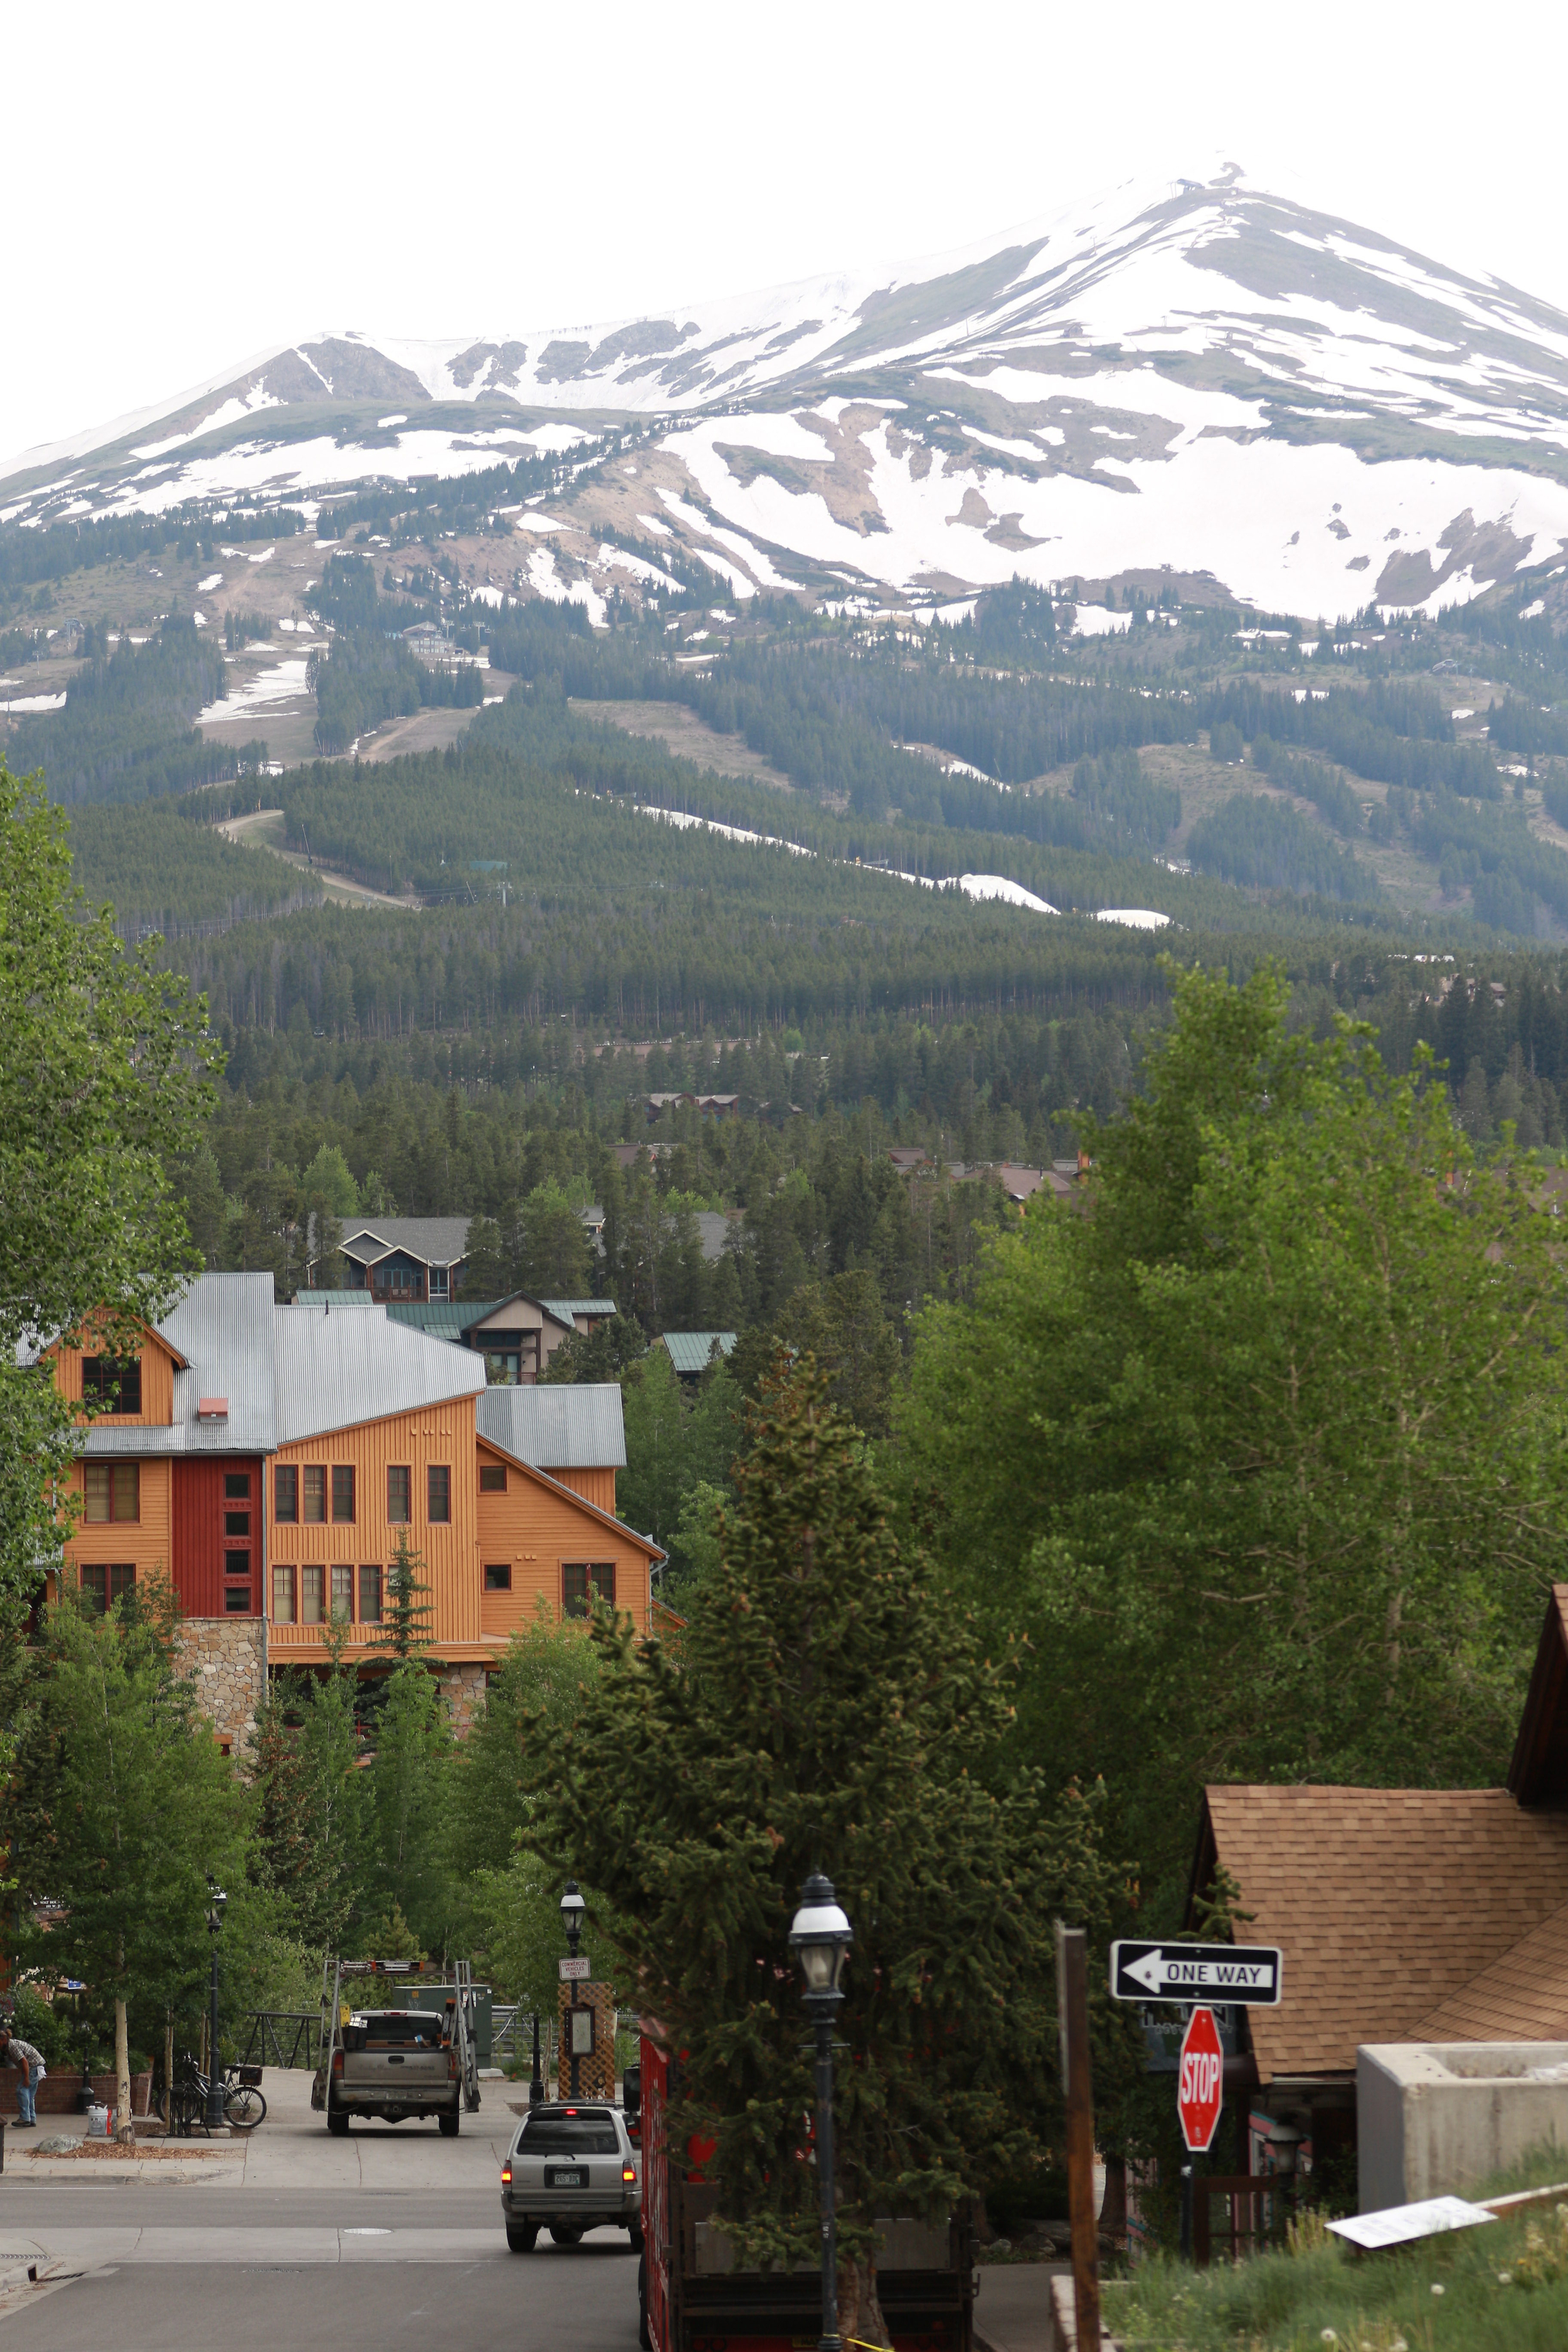 Vacationing in Breckenridge, CO on June 20, 2016.